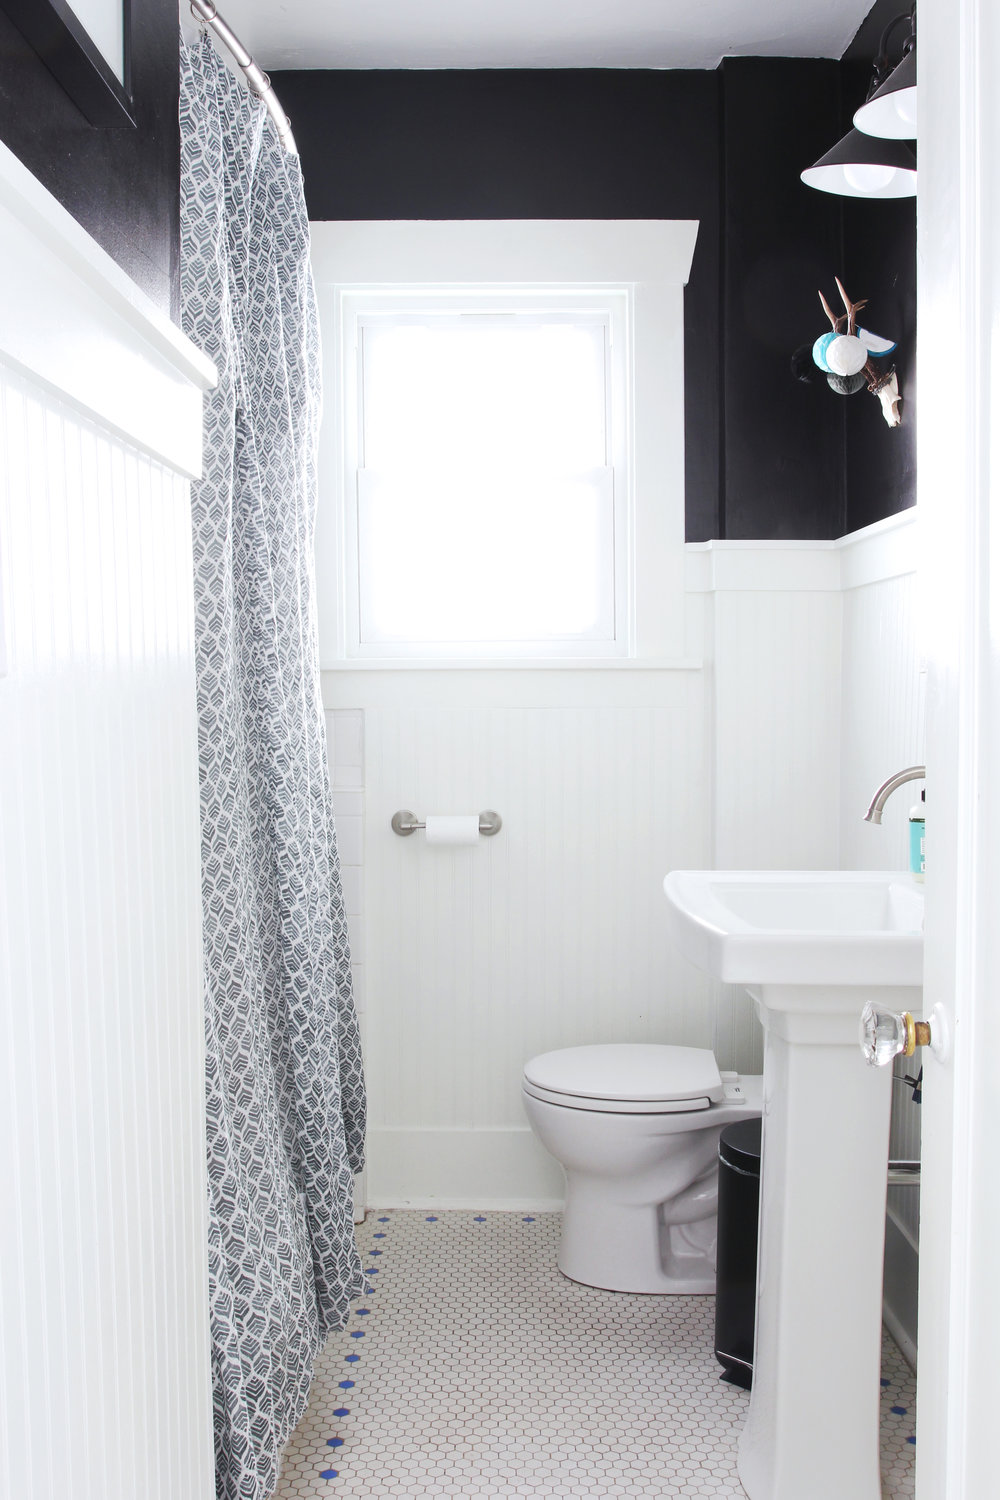 The Grit and Polish - Dexter Bathroom Refresh Under $1000.jpg